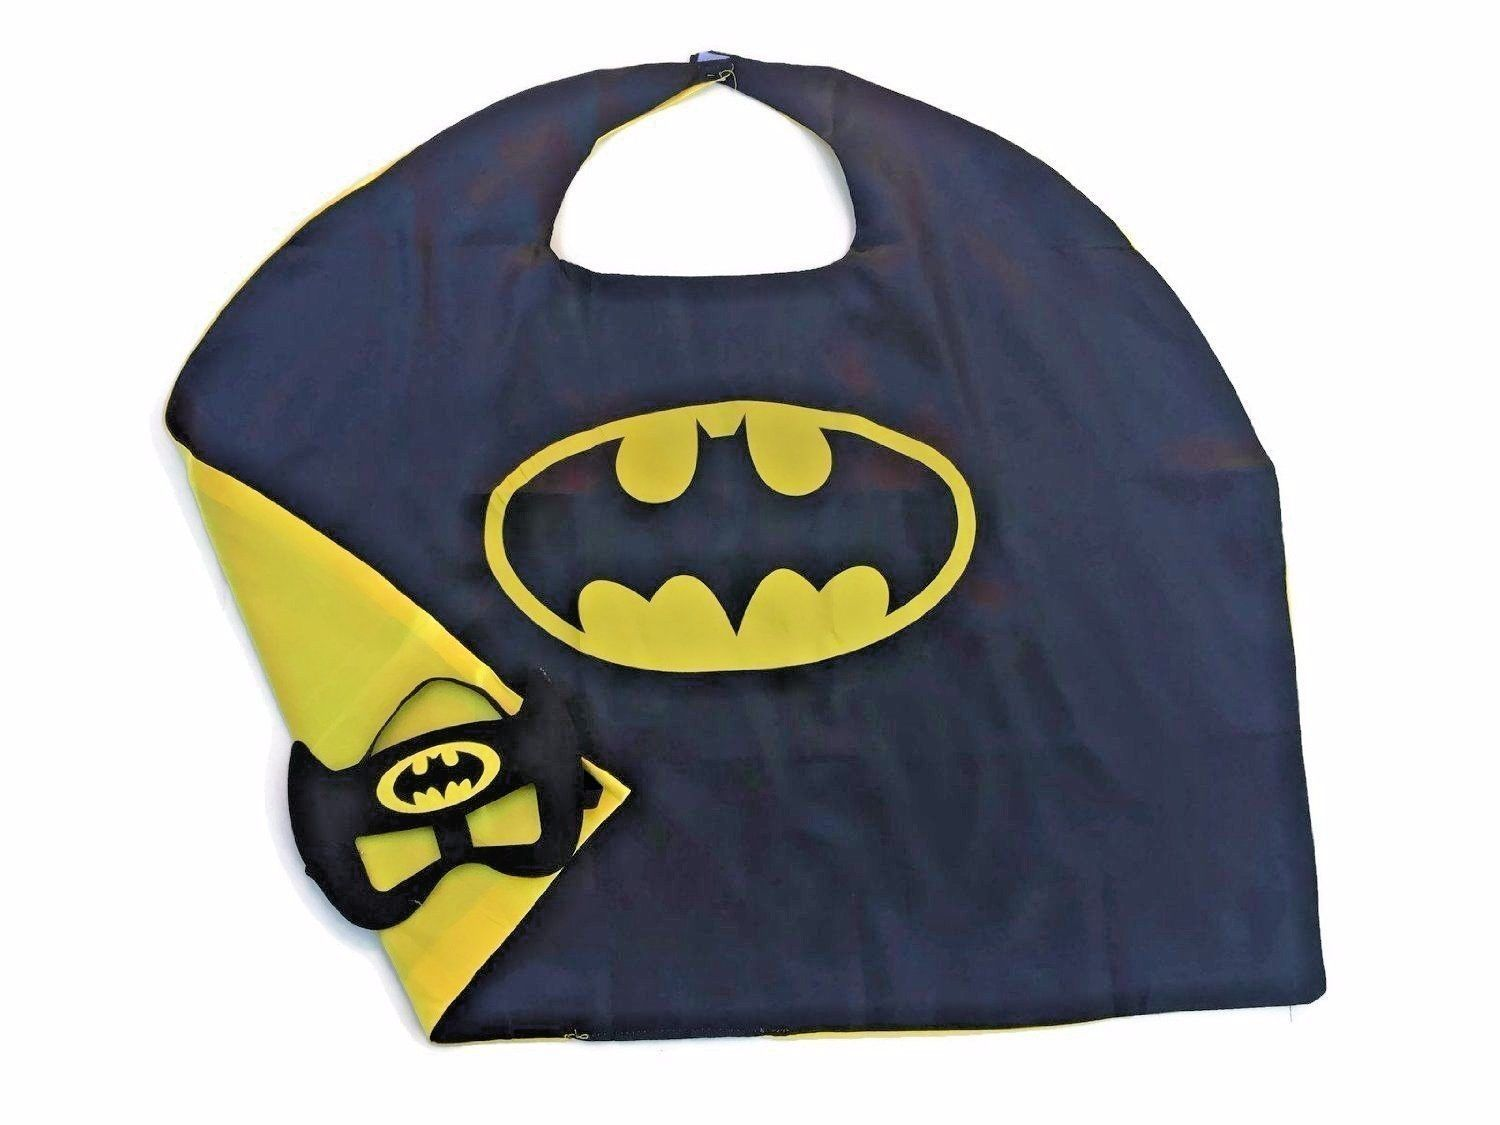 Superhero Child Cape and Mask Satin Lined Cape Black with Yellow  Bat  Ensigna